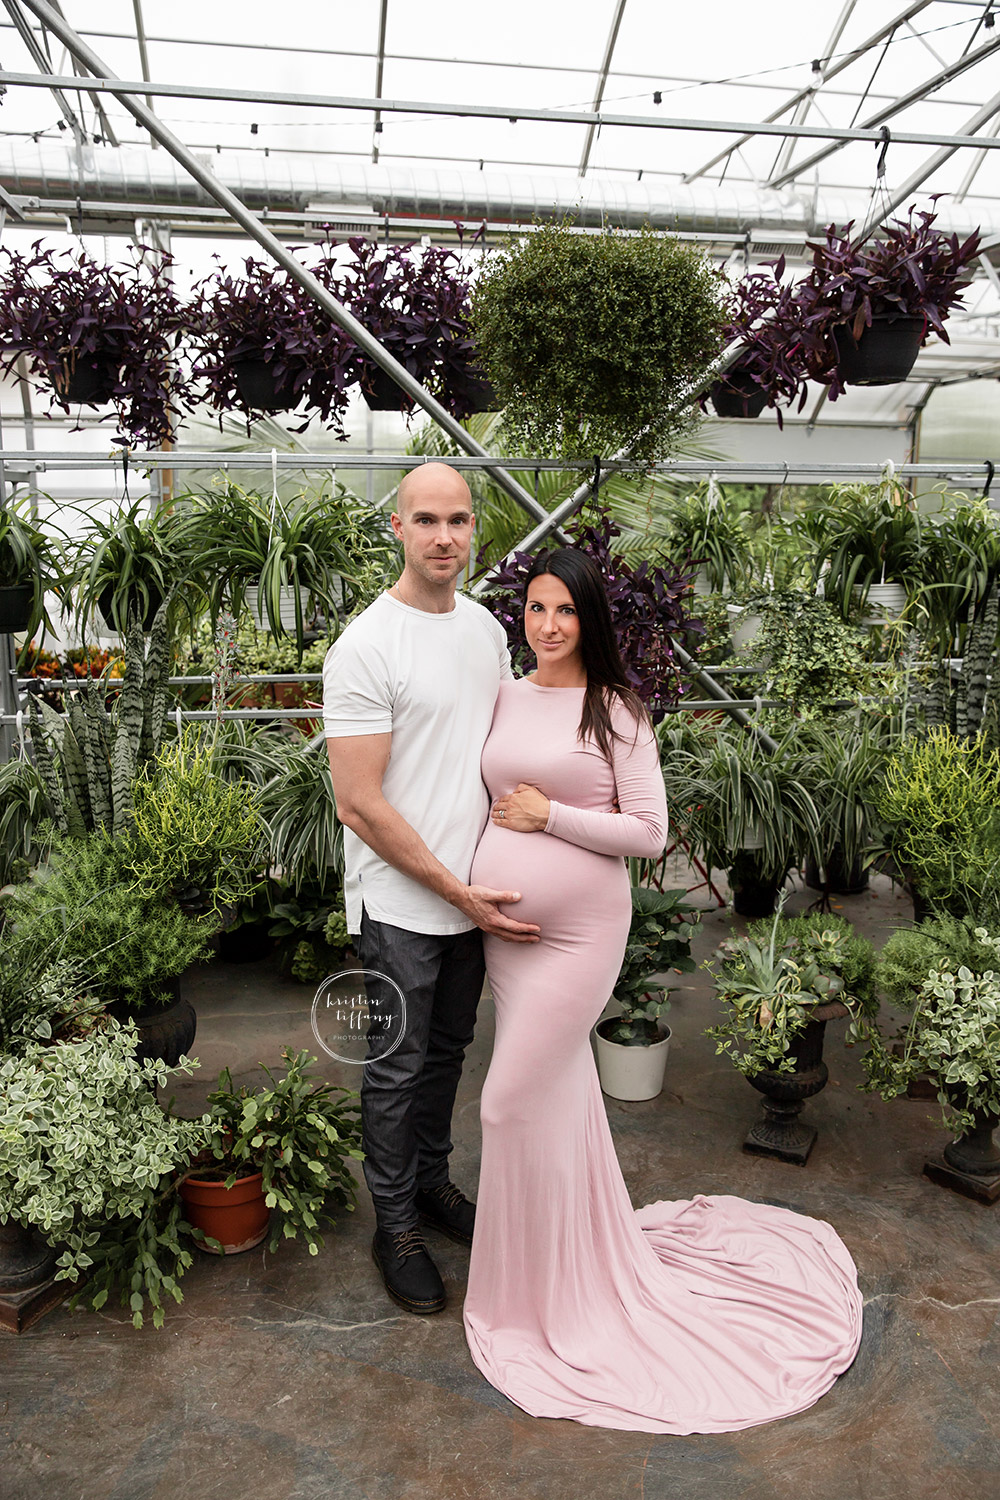 a maternity photo from a maternity photoshoot